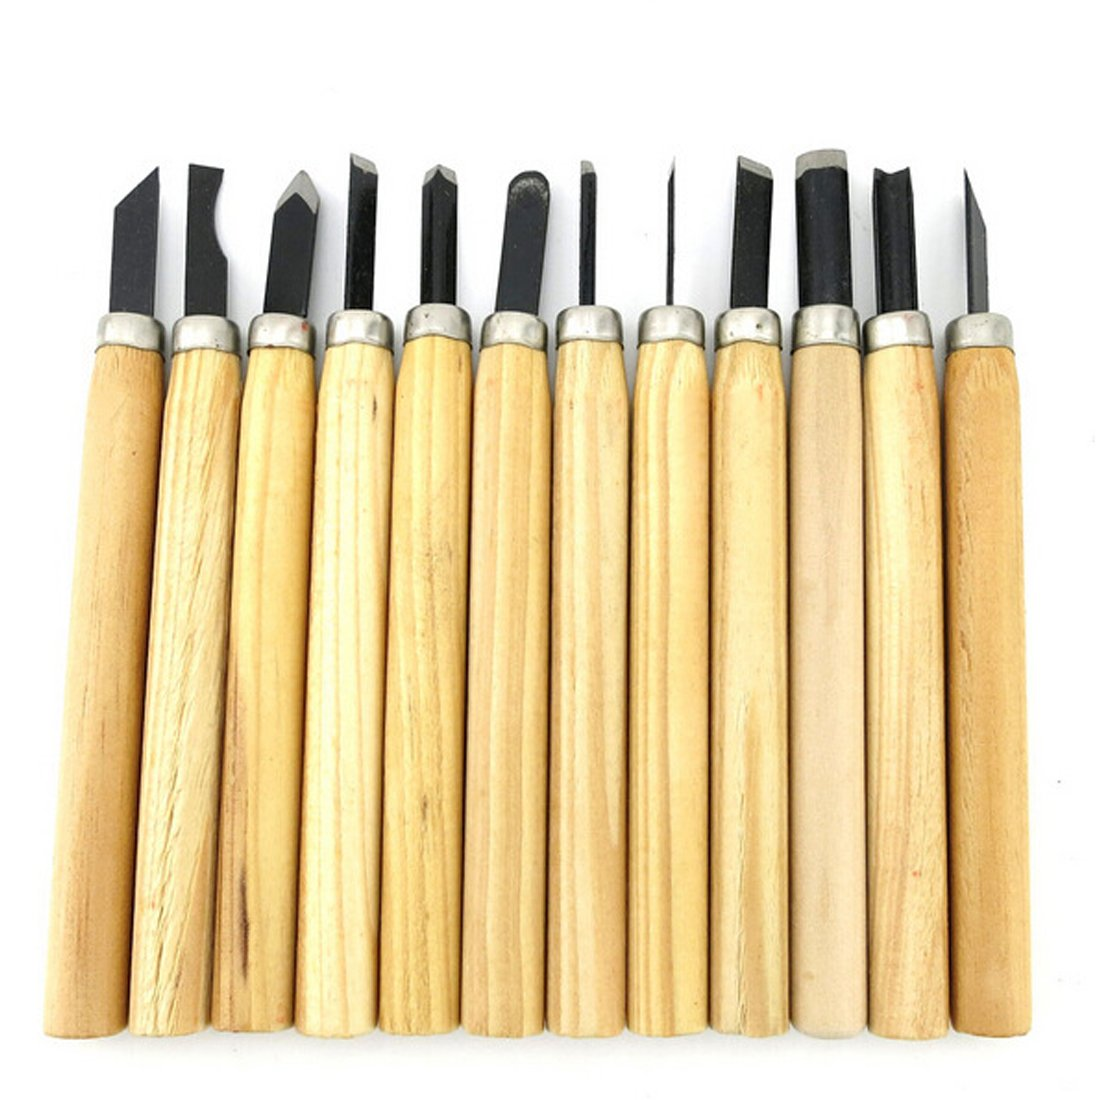 Hand Tools 12pcs/Set Hand Wood Carving Chisels Tool for Basic Woodcut Working Clay Wax DIY Tools and Detailed Woodworking YOGINGO